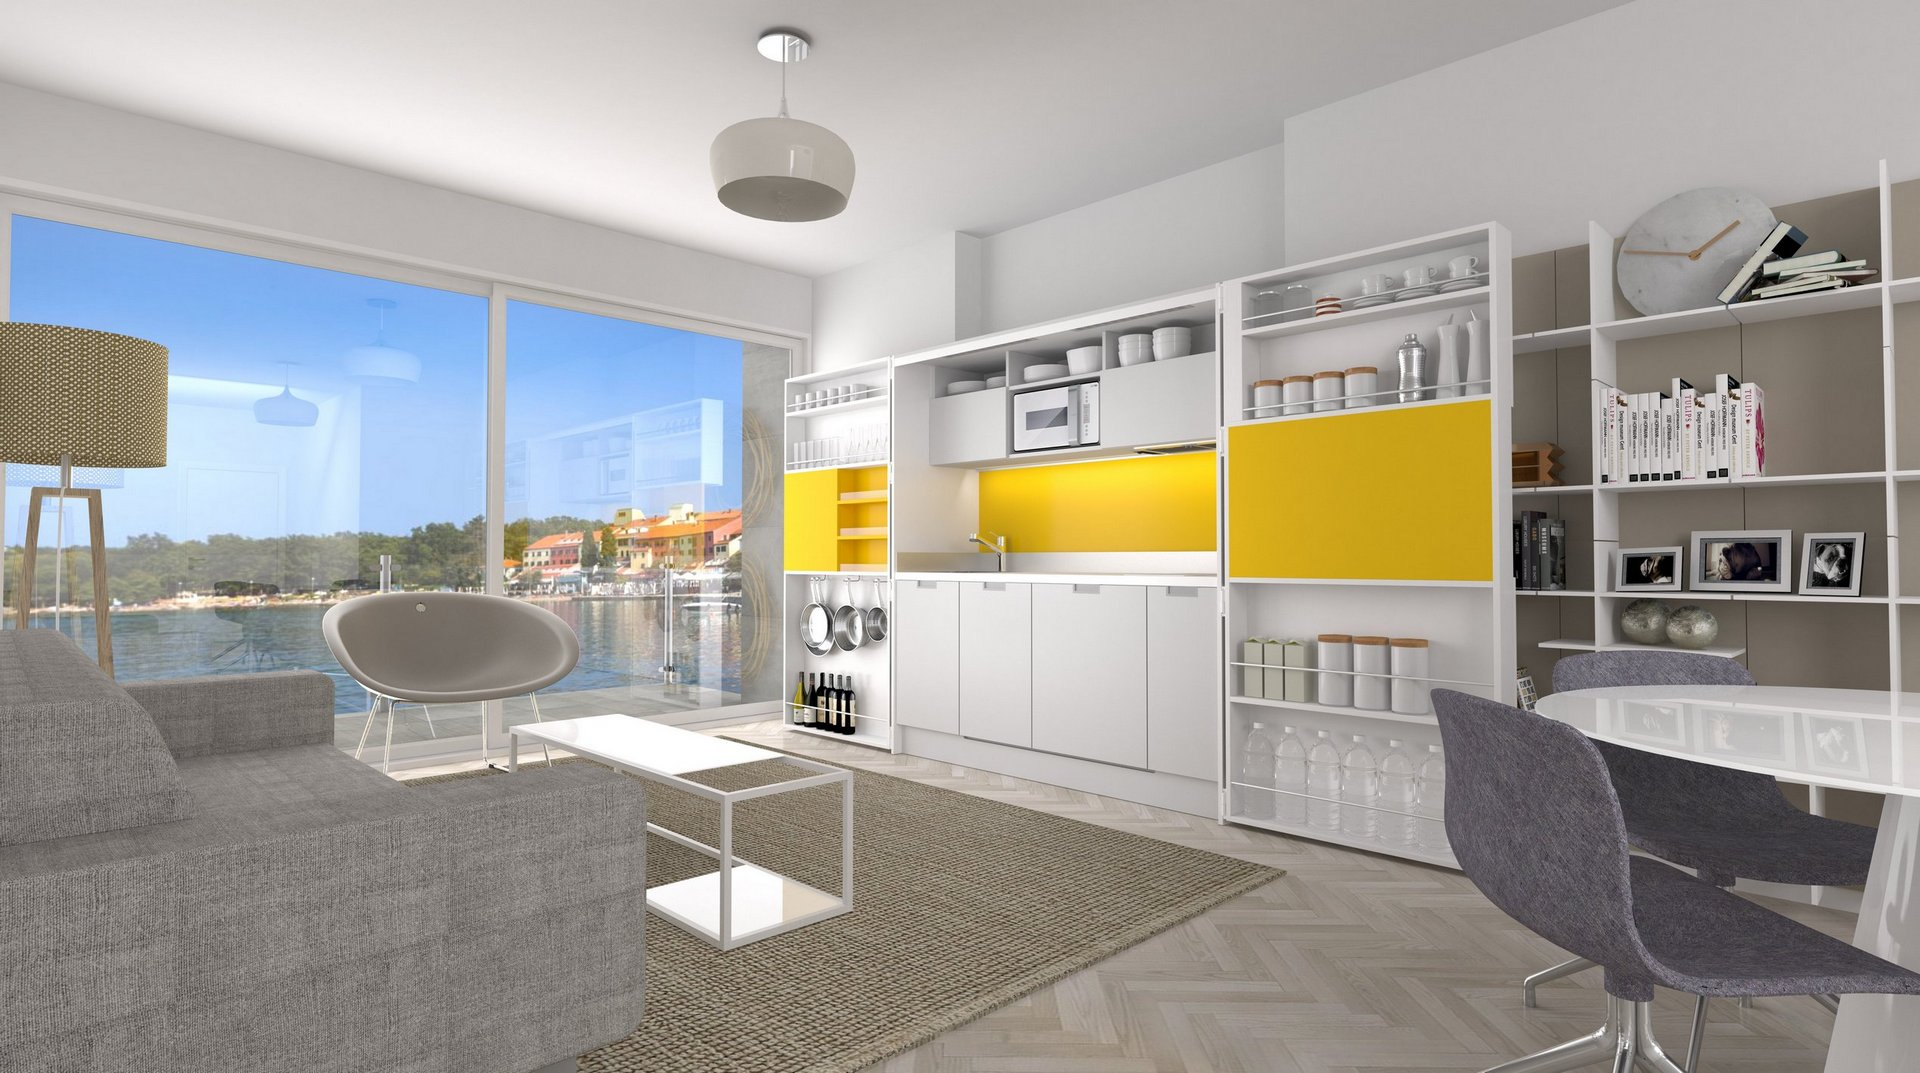 squarerooms-spaceman-compact-kitchen-3d-render-yellow-adaptable-retractable-expandable-furniture